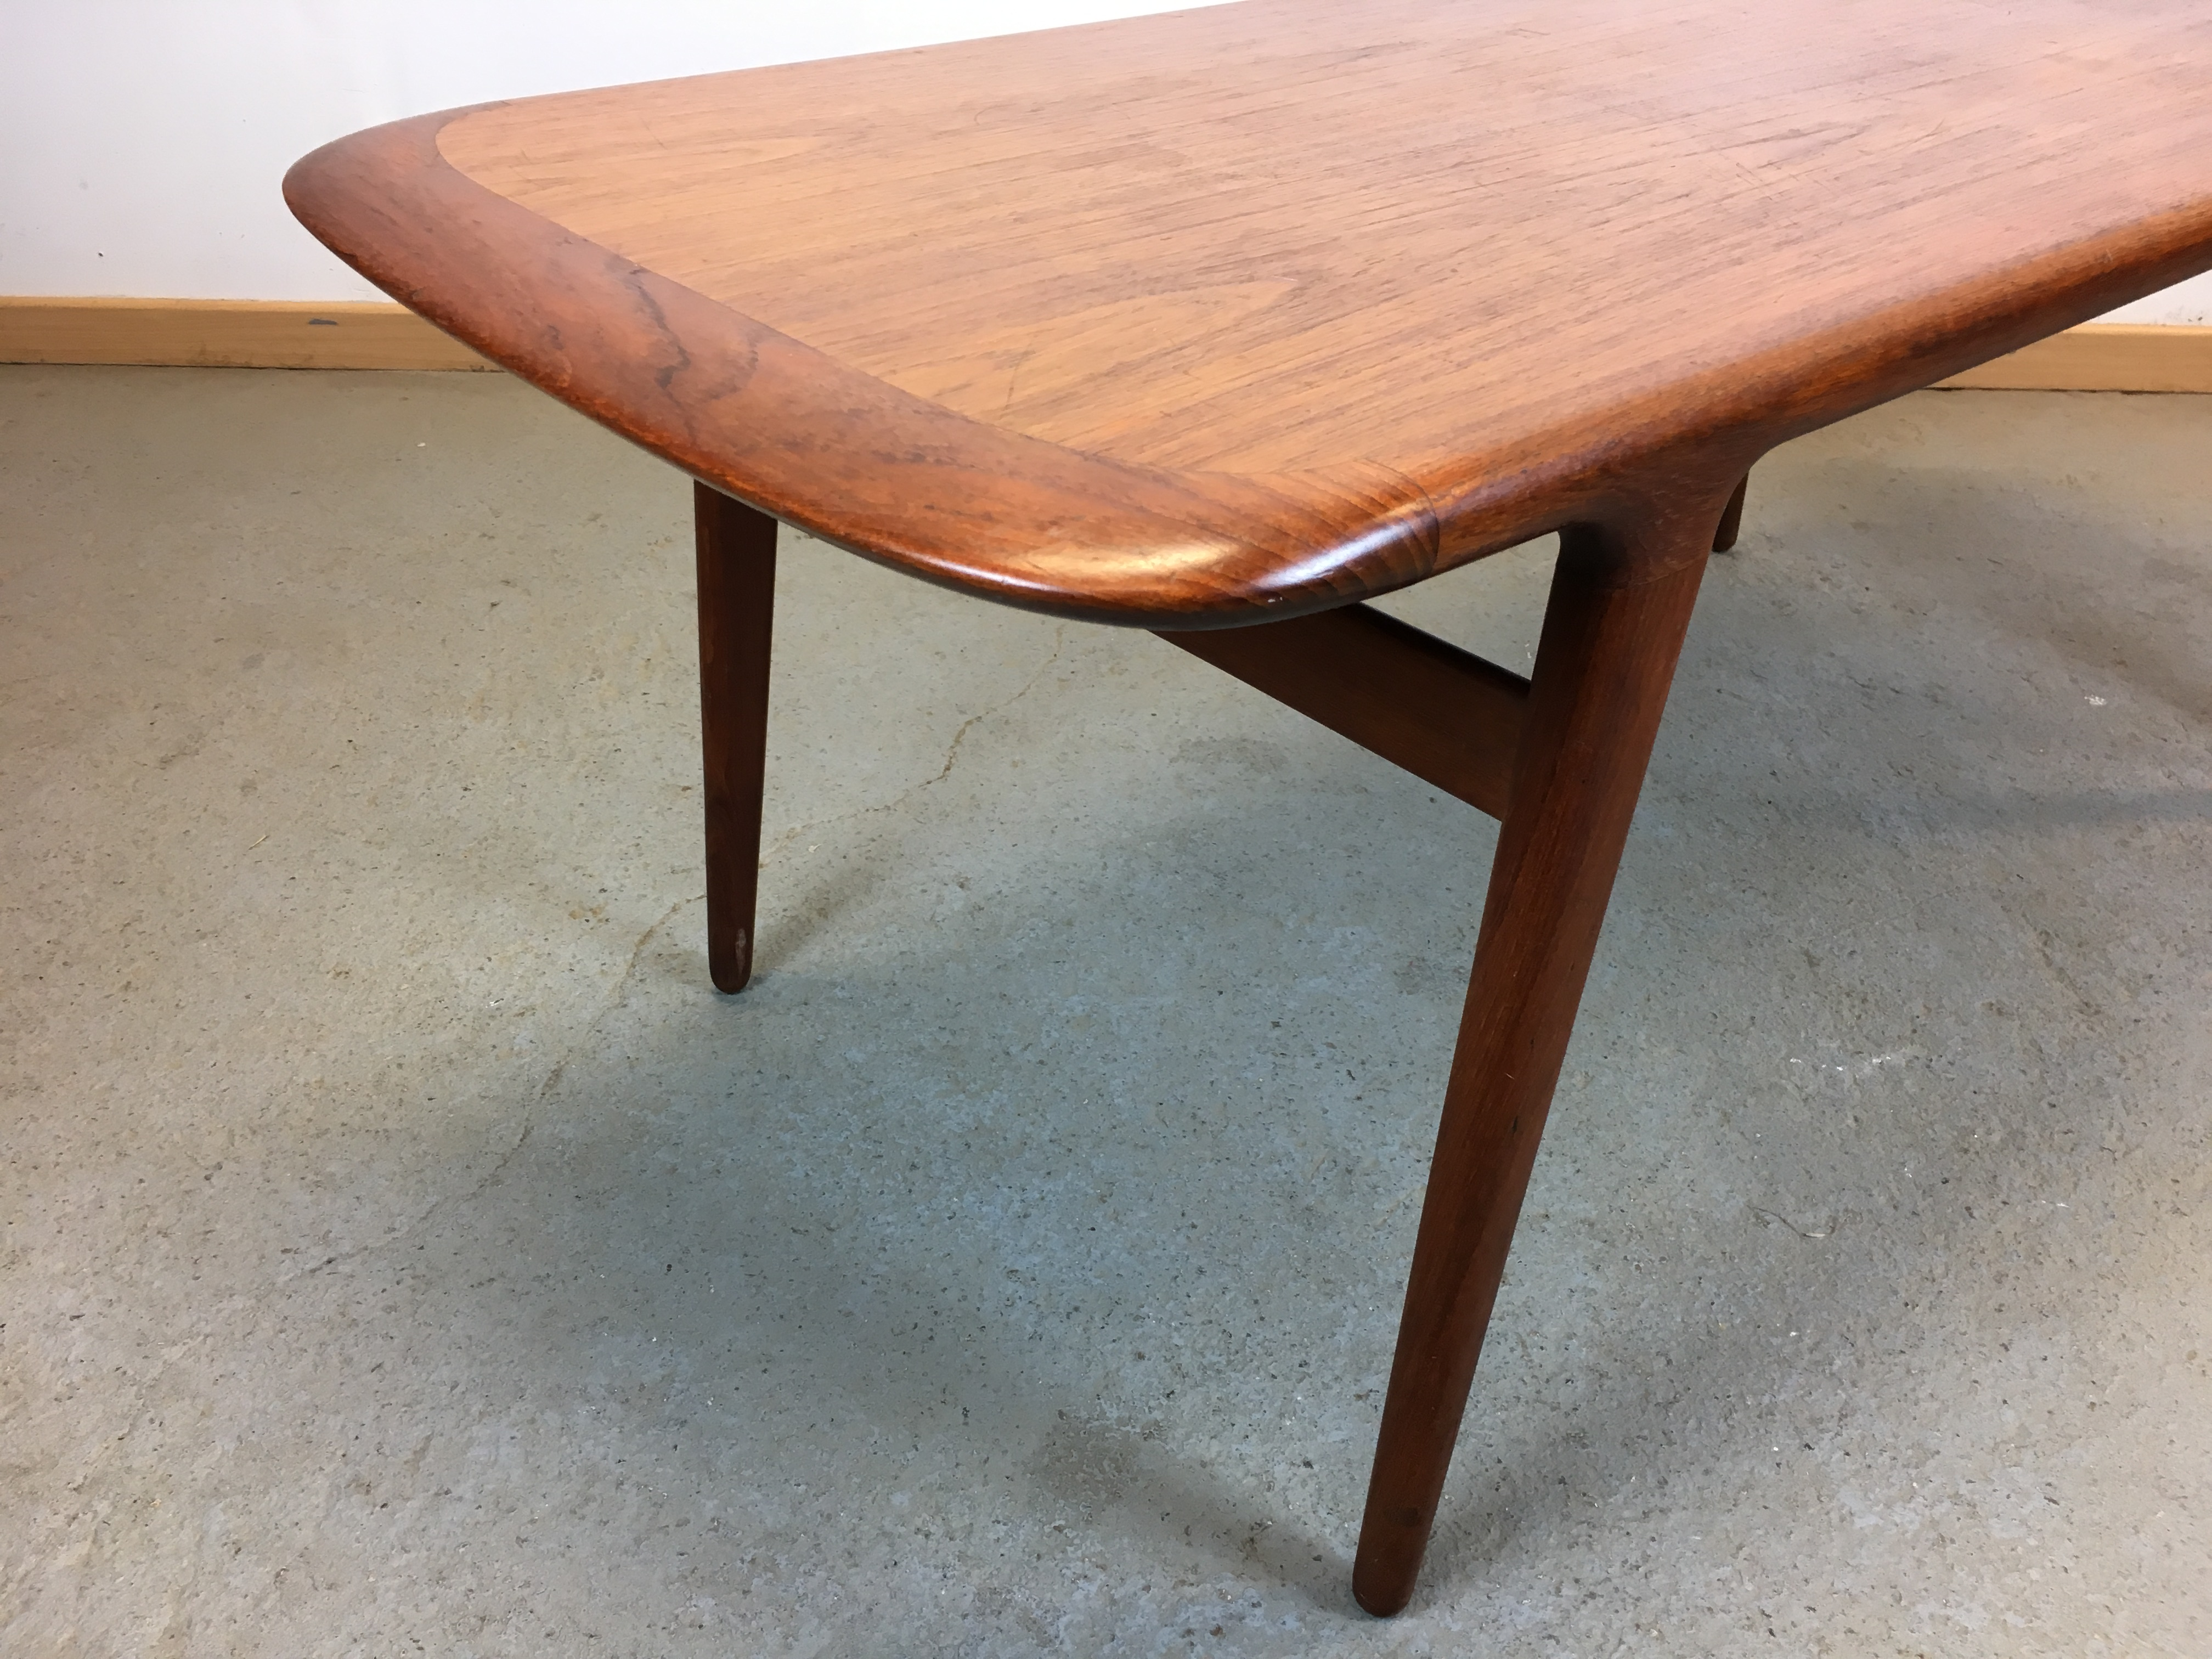 Table Basse Scandinave 60 Cm Pearlfection Fr